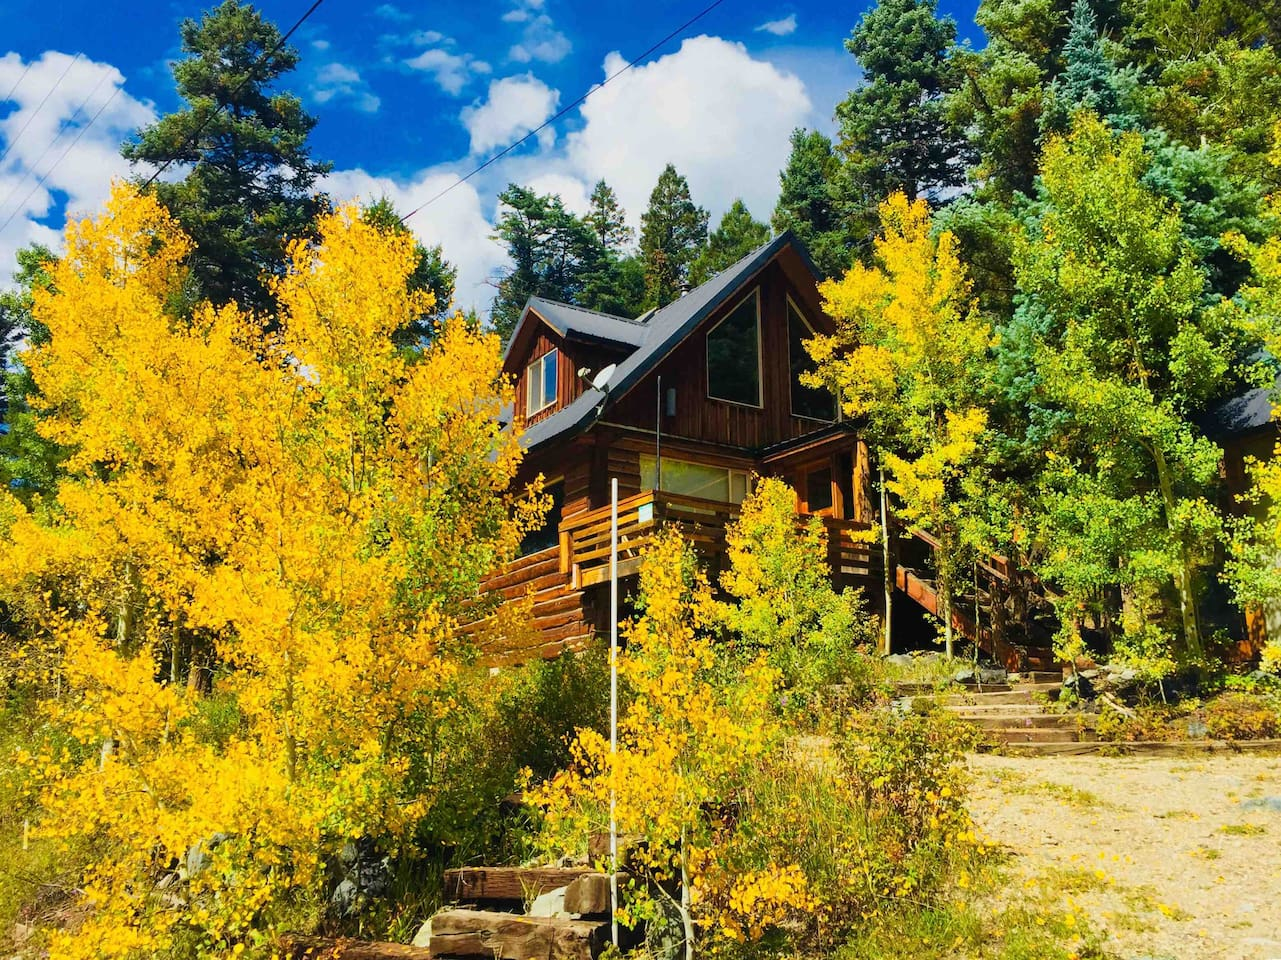 Fall at the Cabin surrounded by Carson National Forest